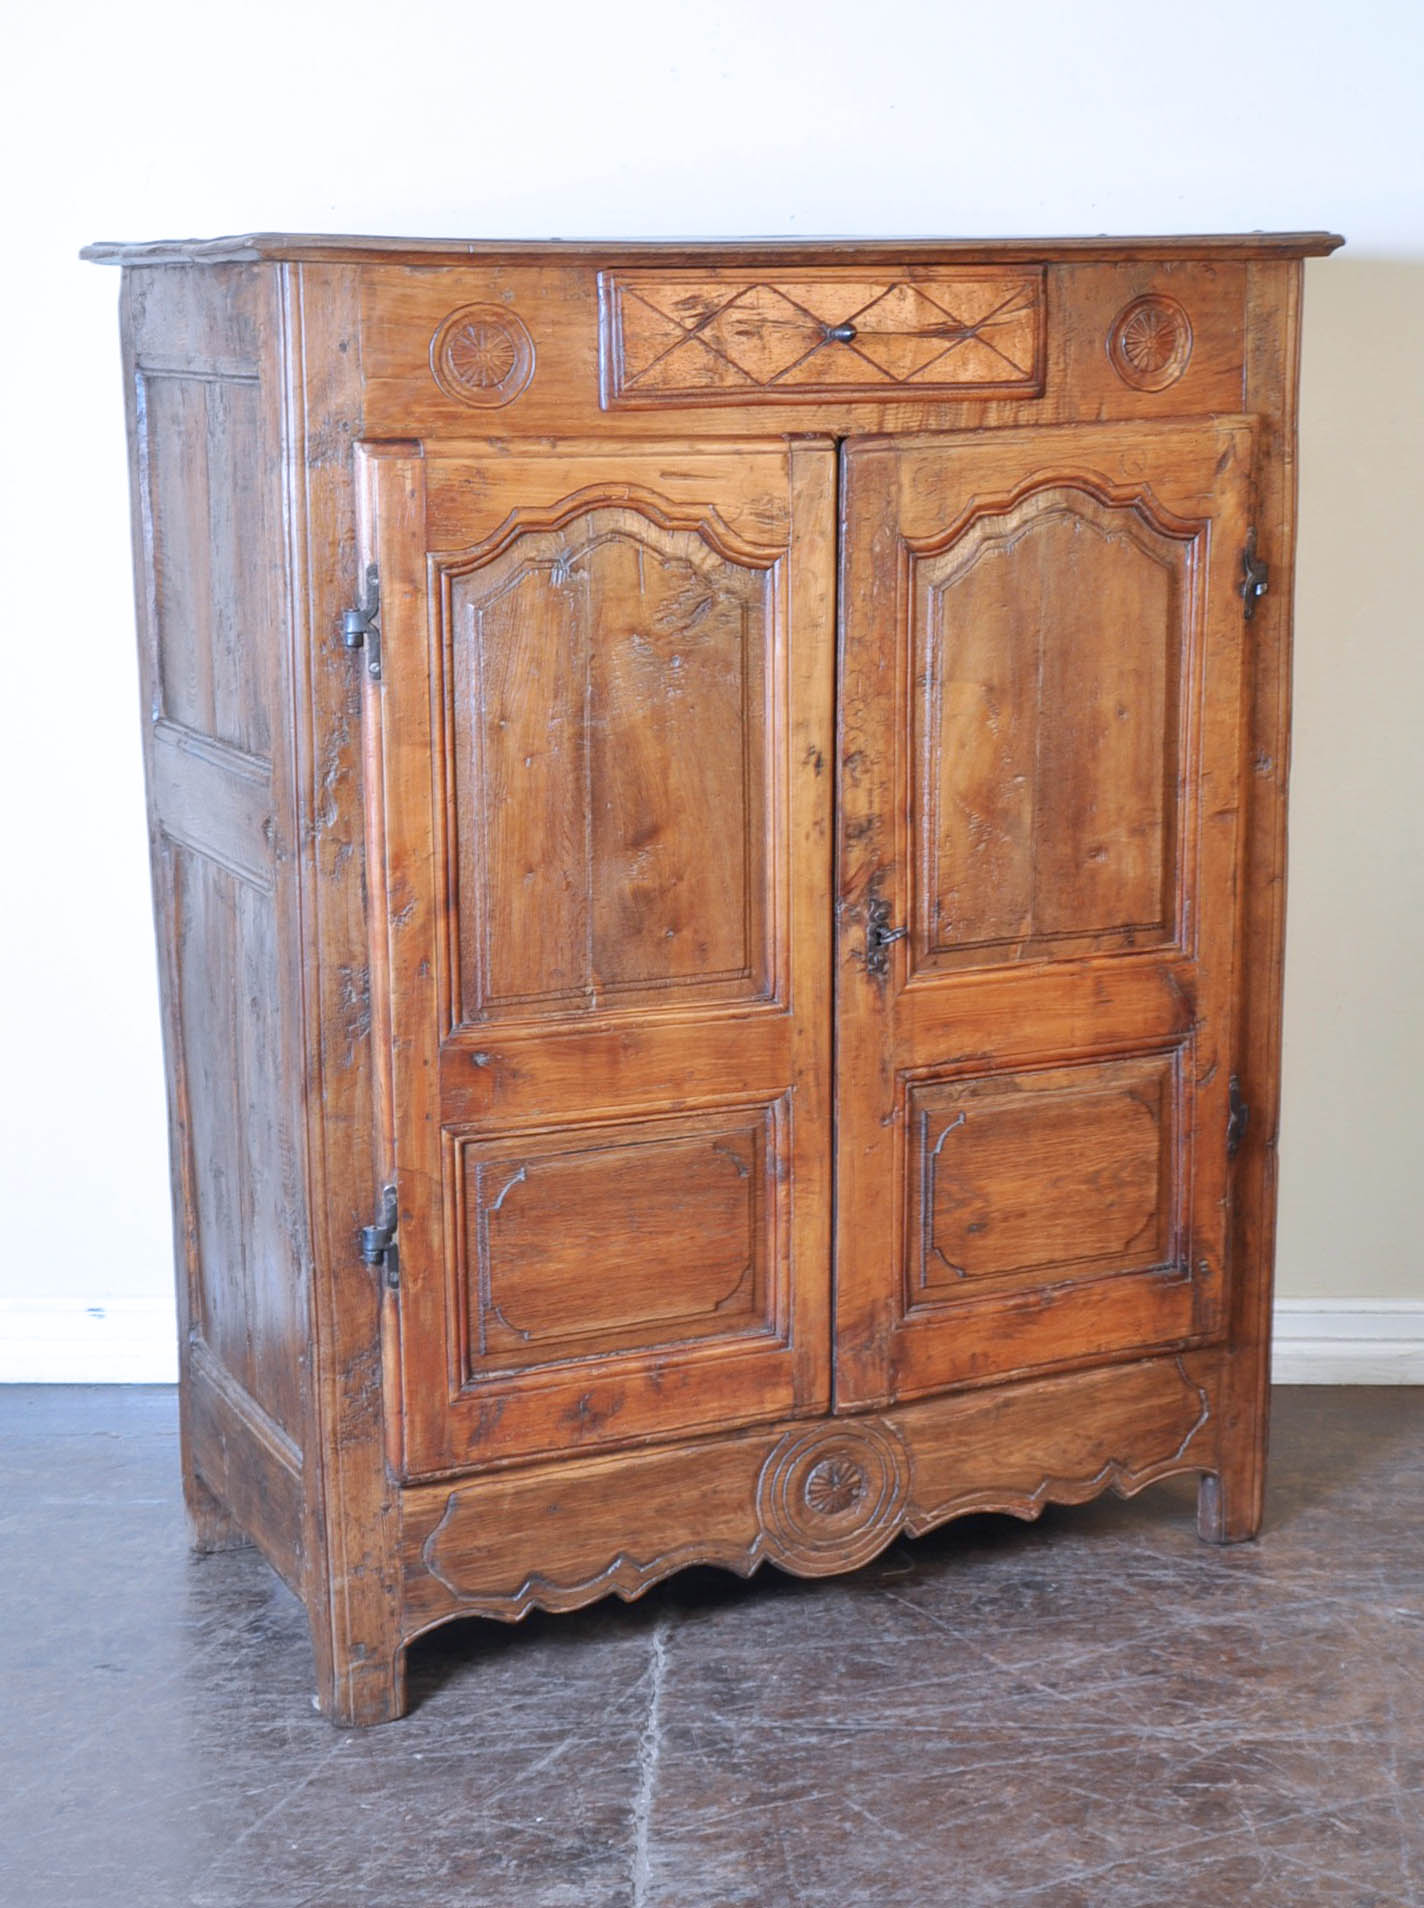 - Spanish Antique Wooden Cabinet With 2 Doors And 1 Drawer - RelicsAZ